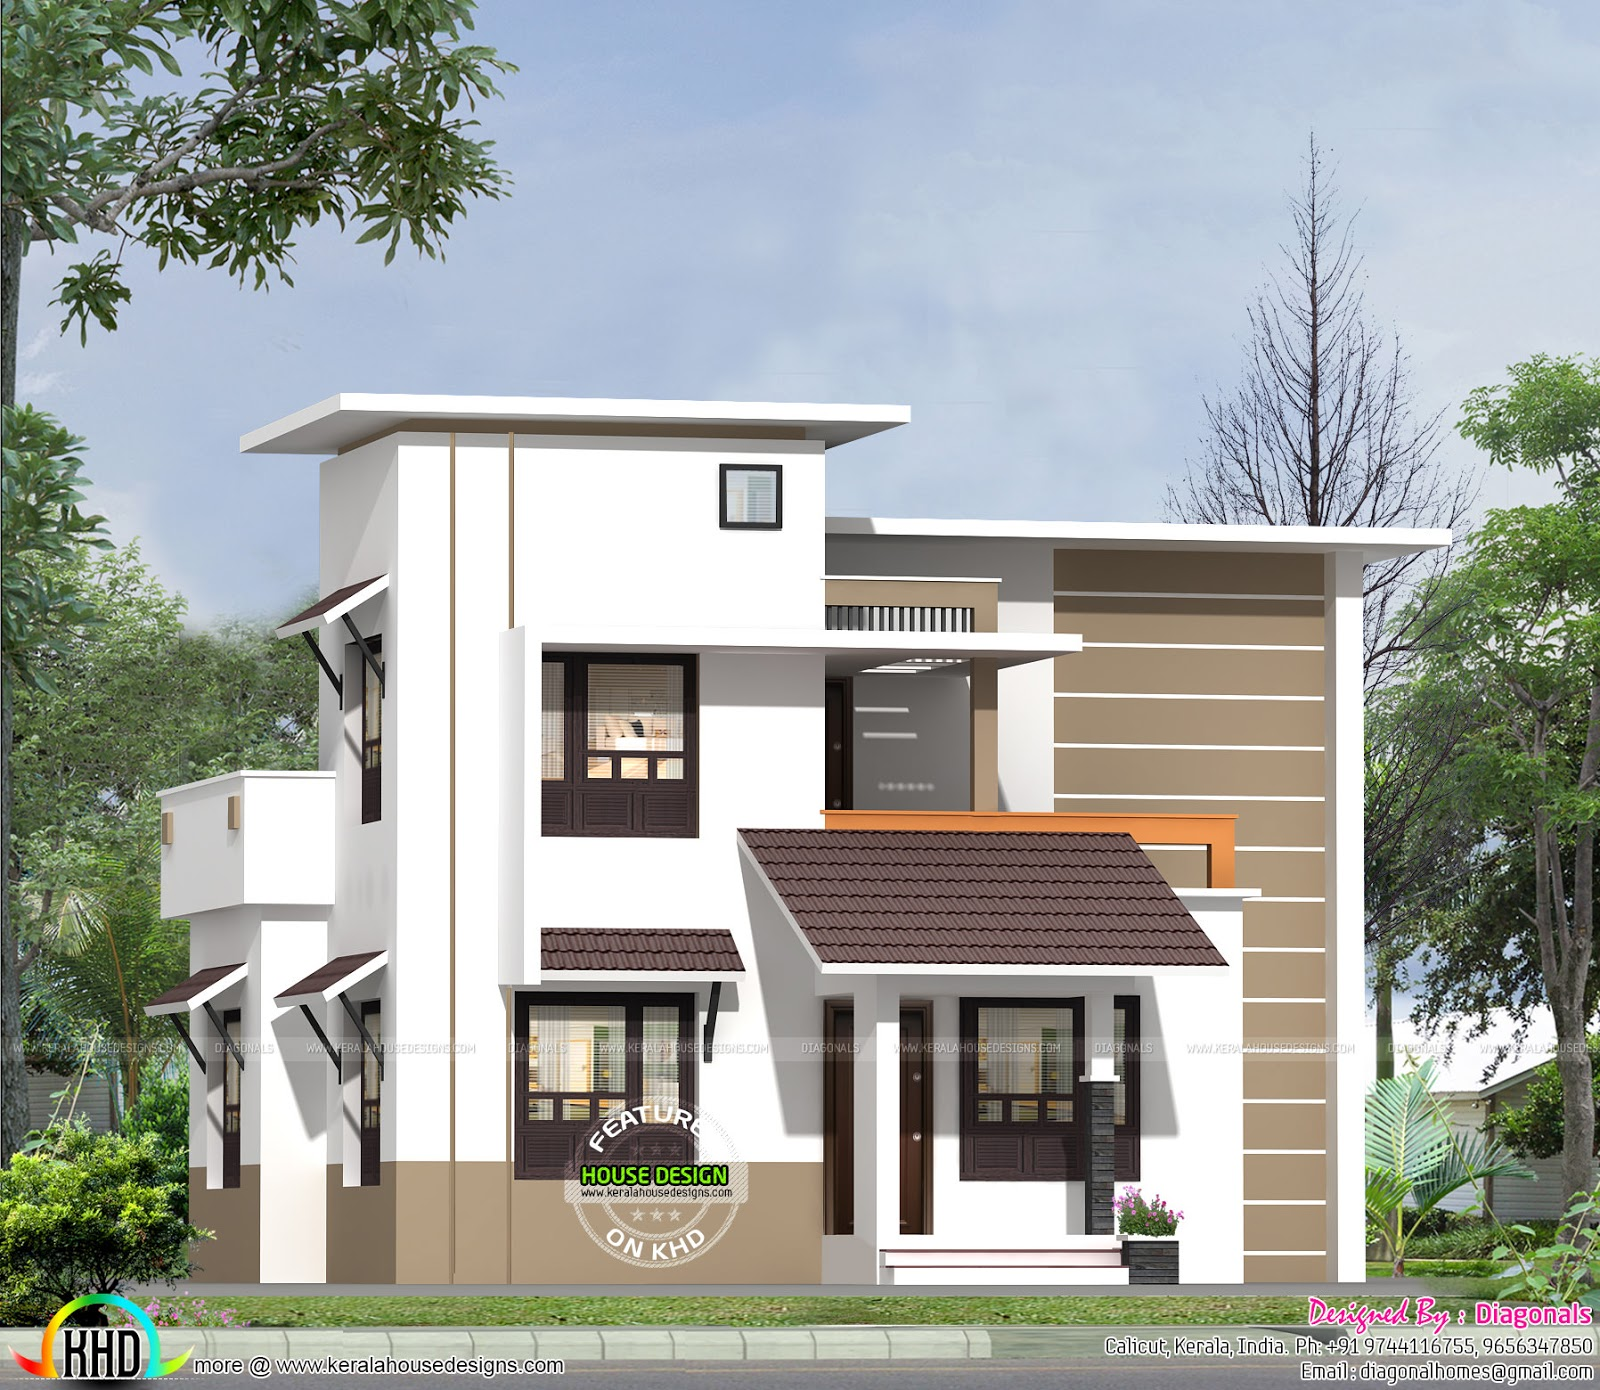 Affordable low cost home kerala home design and floor plans Low budget home design ideas